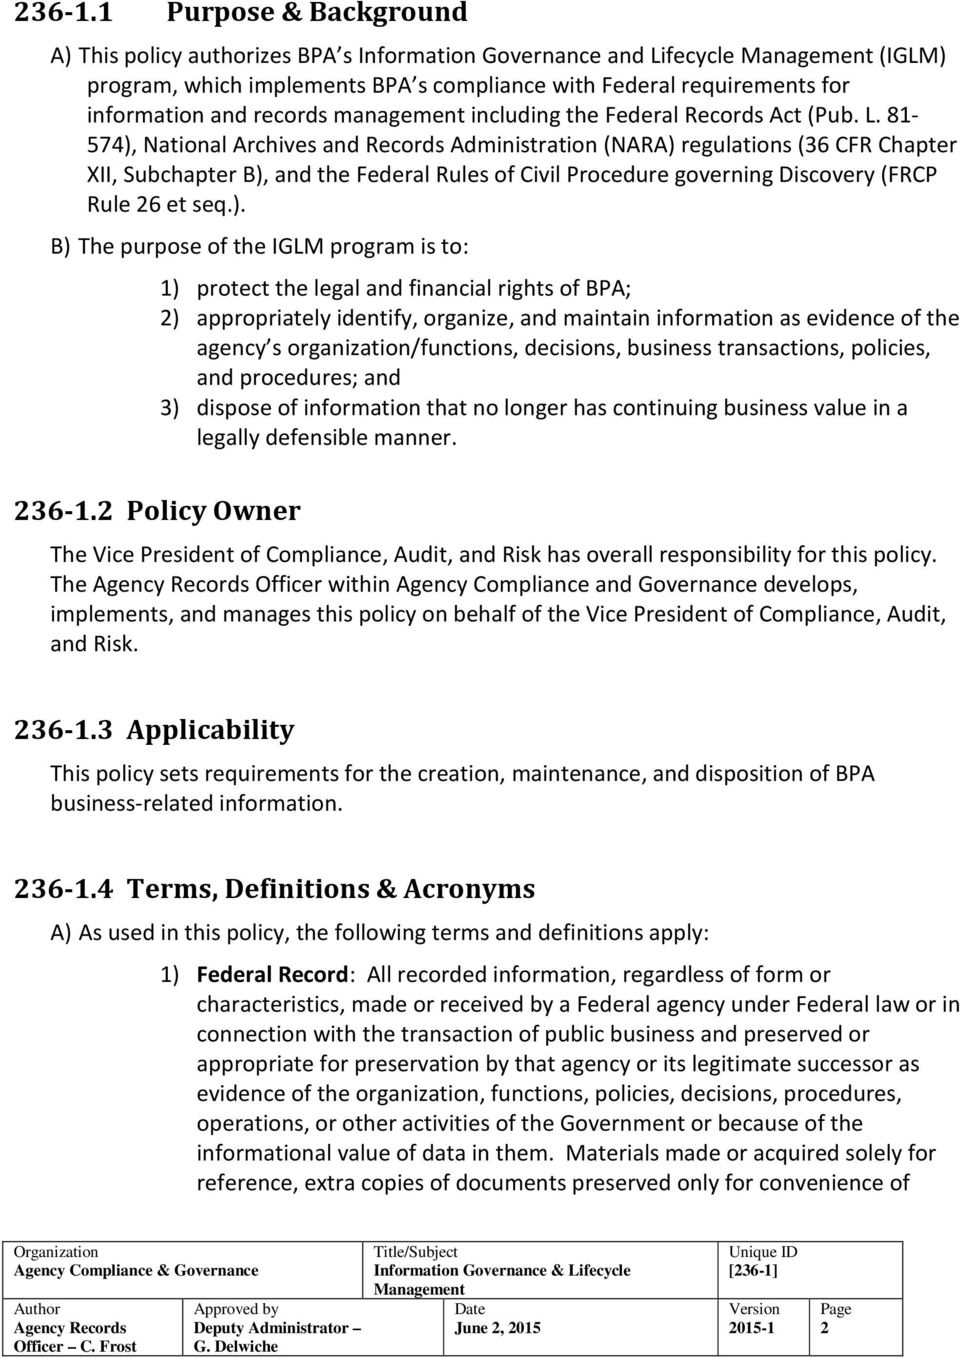 It Et Management Policy Template | Bpa Policy Information Governance Lifecycle Management Pdf